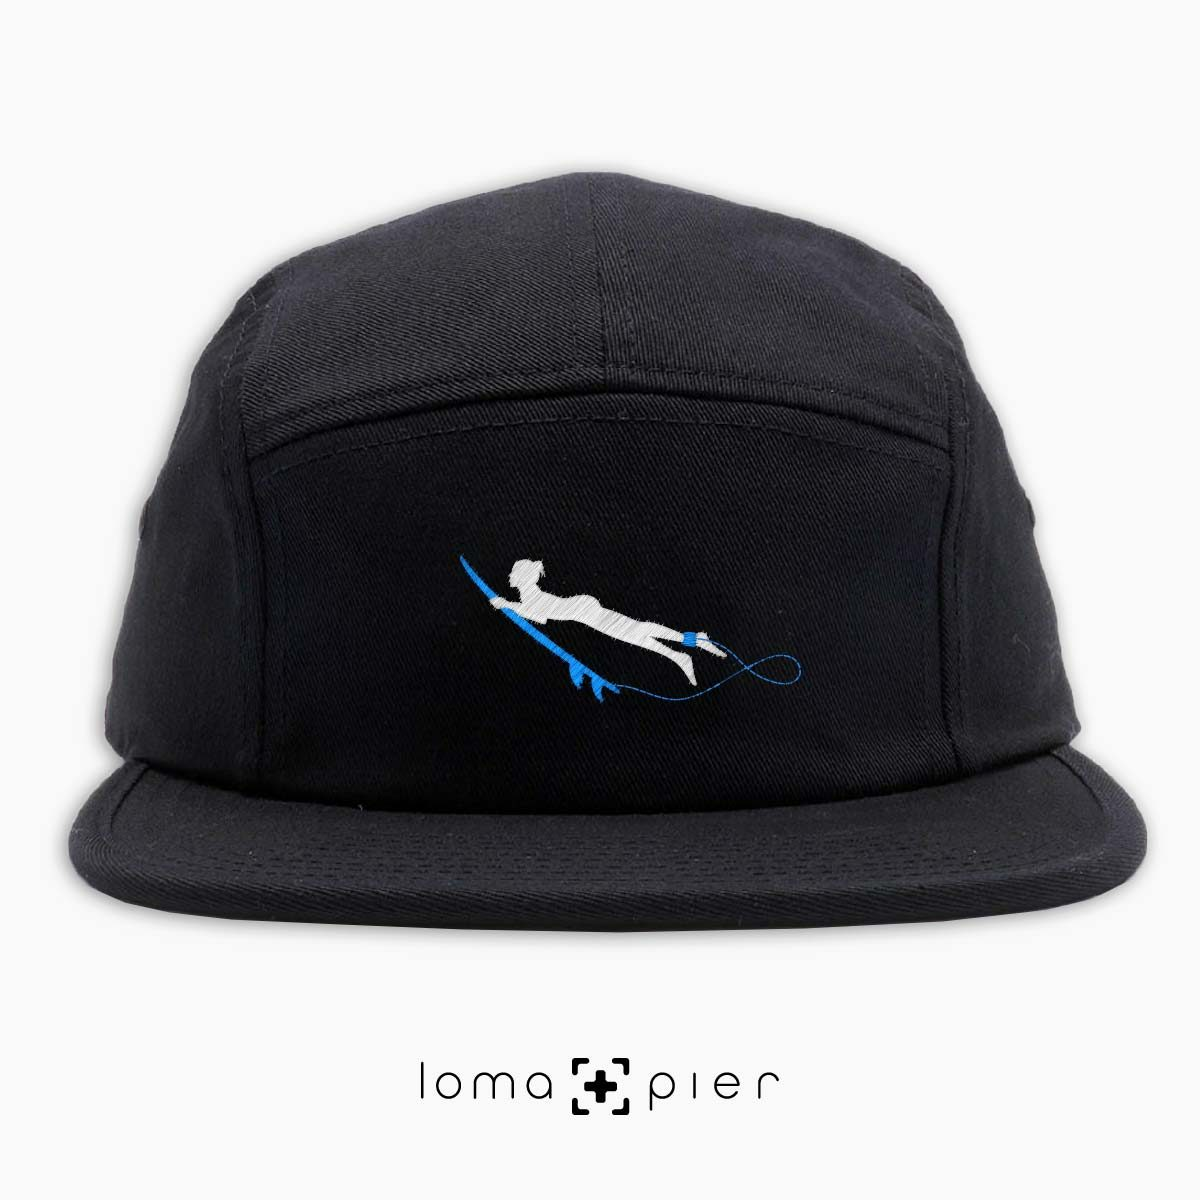 DUCK NAKED surfer icon embroidered on a black cotton 5-panel hat by loma+pier hat store